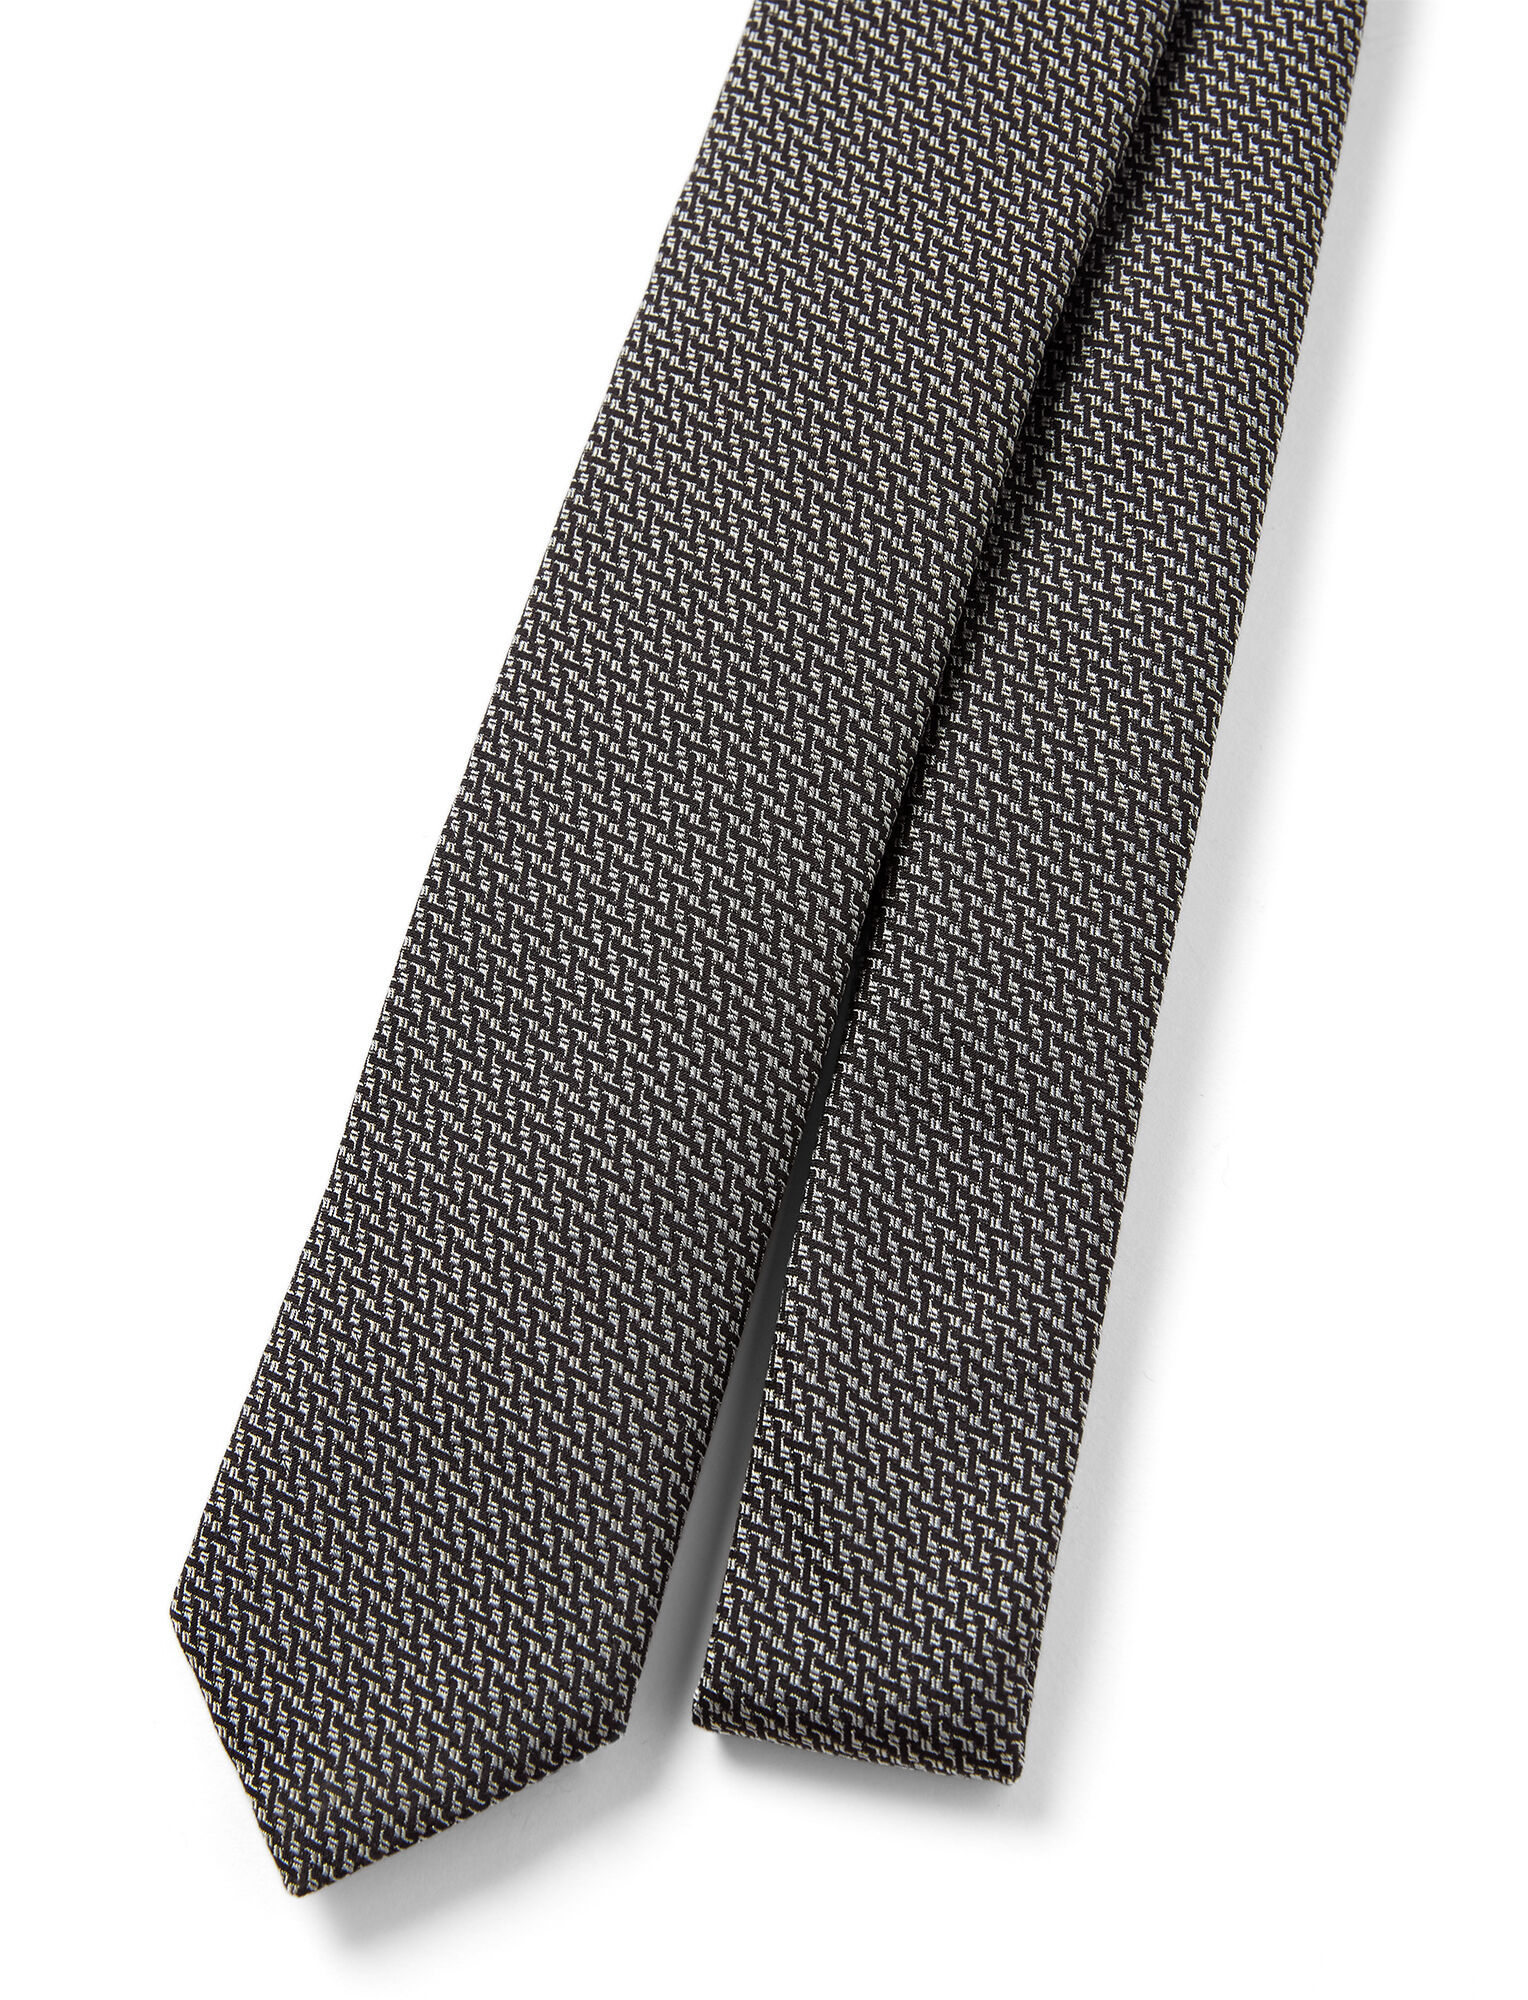 Joseph, Printed Silk Tie, in BLACK